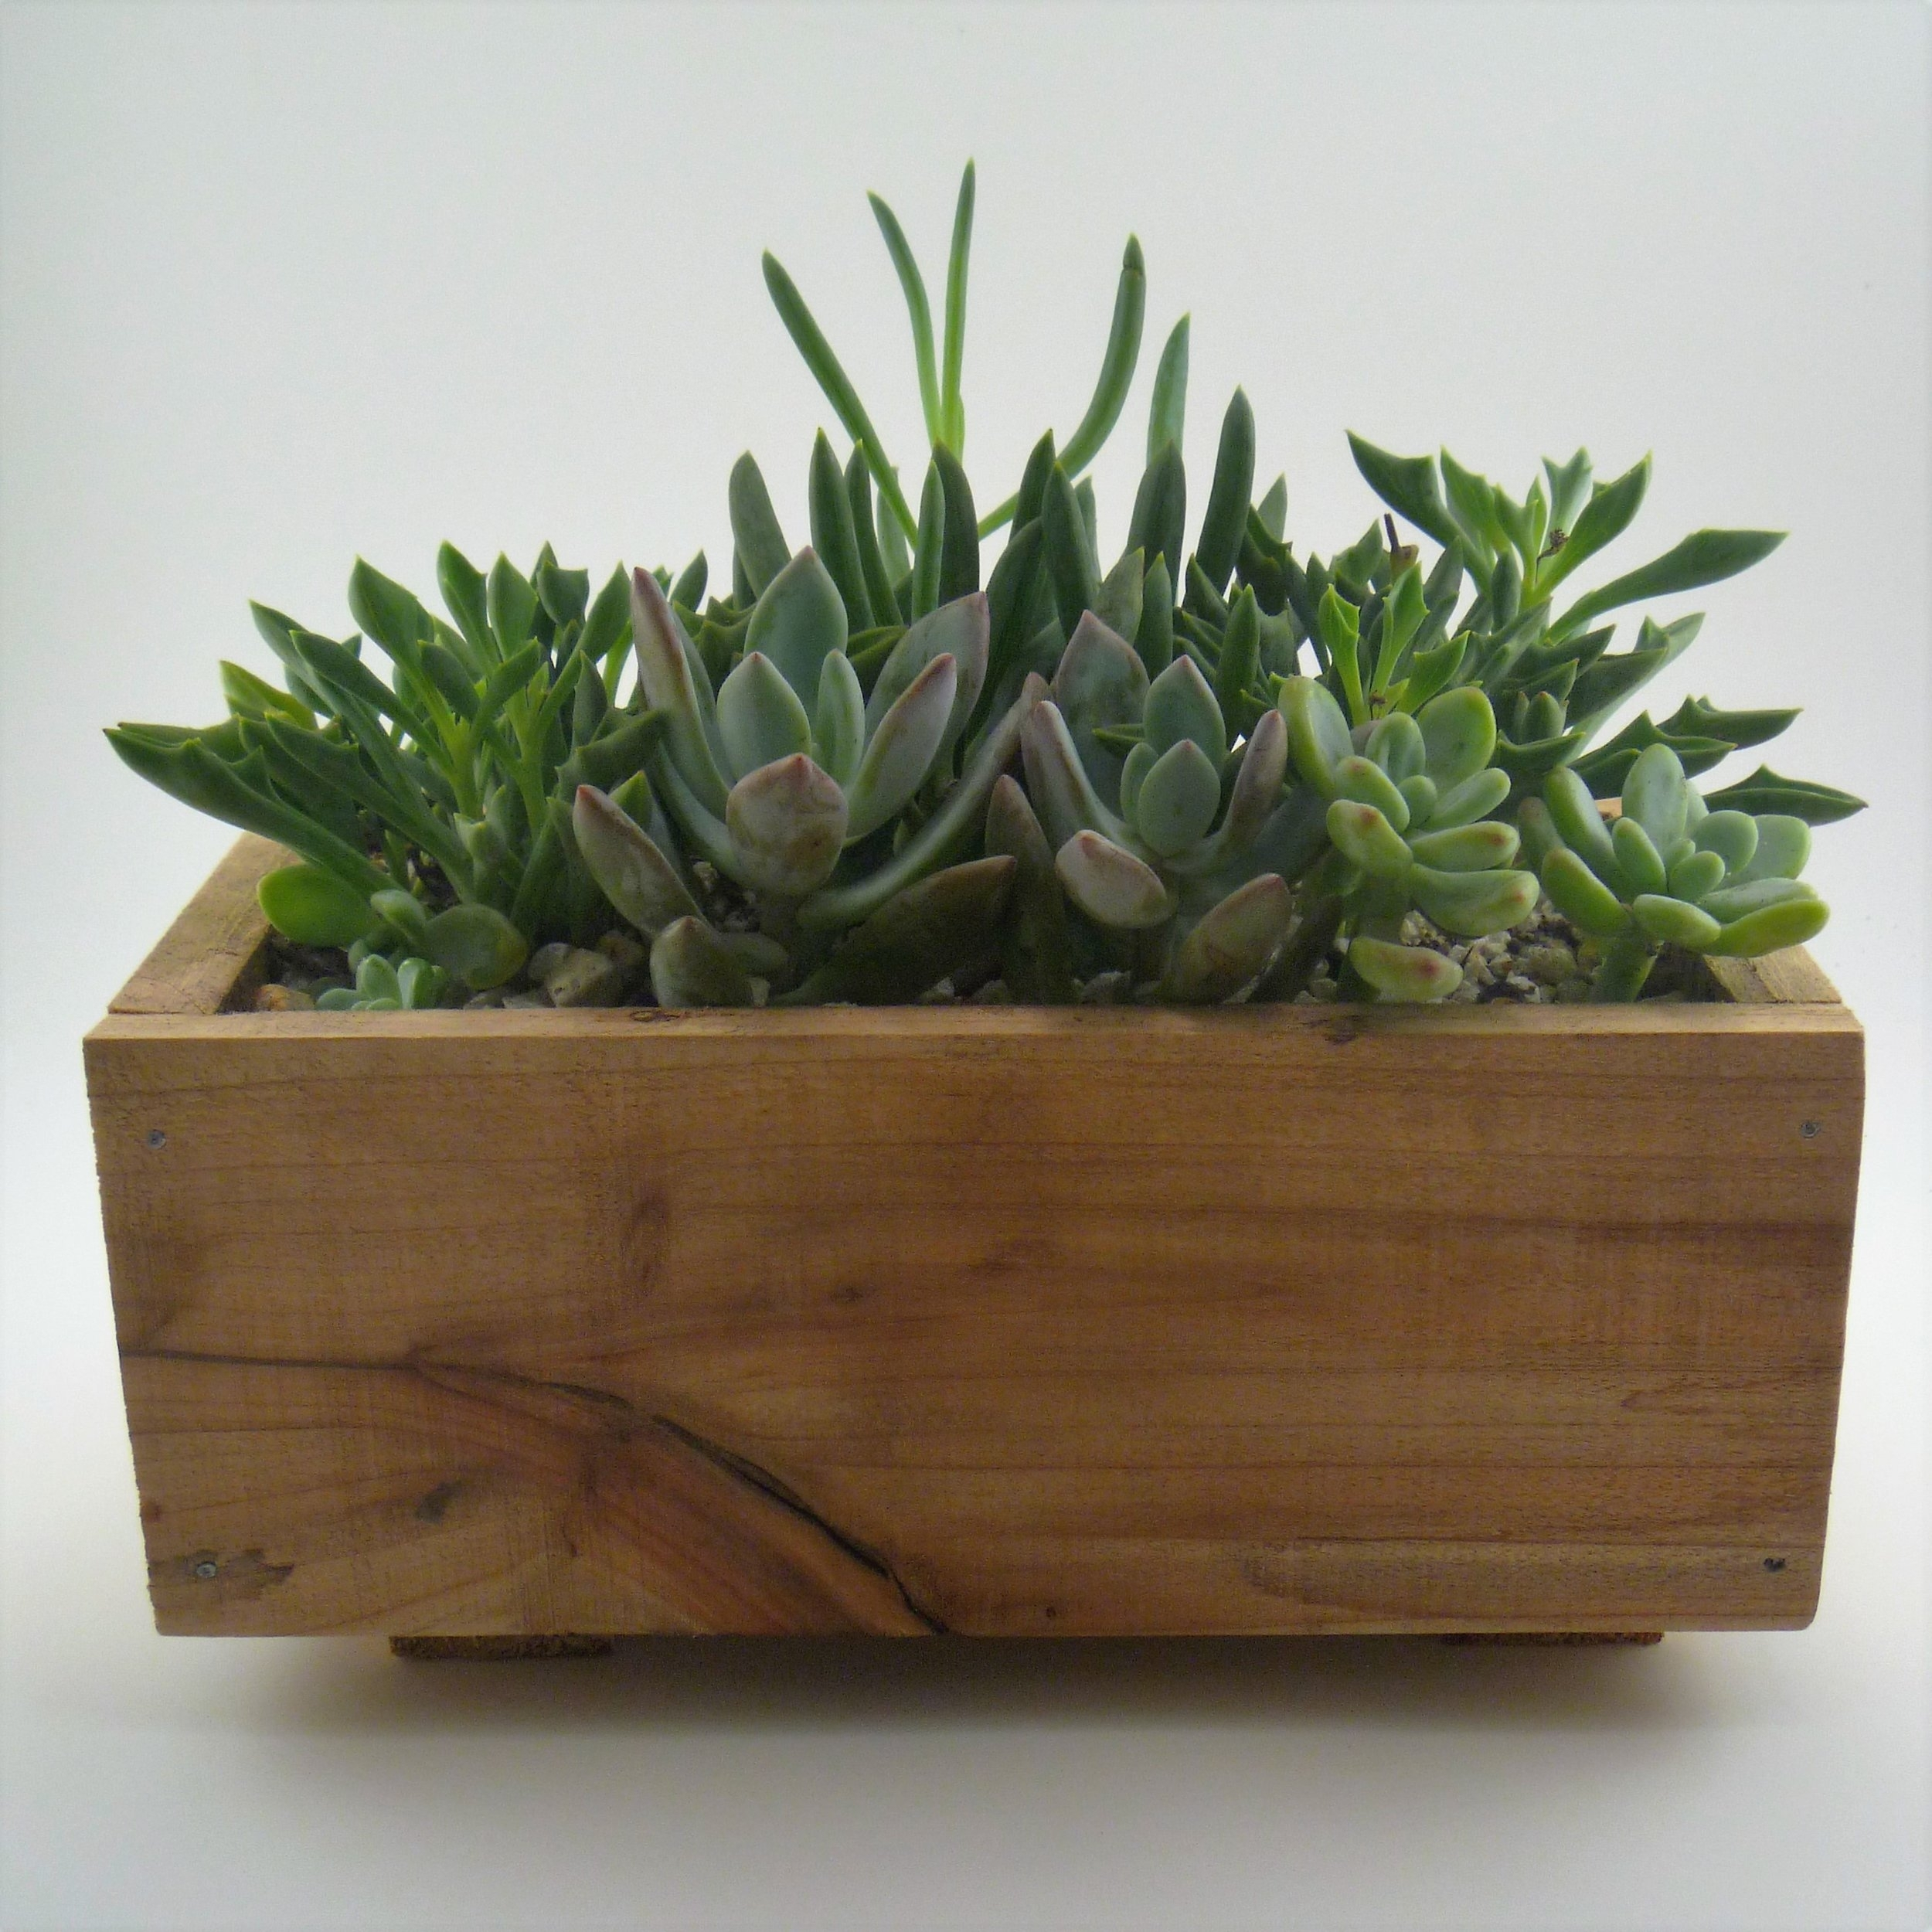 In this hands-on workshop participants will create a beautiful miniature garden in a handmade aromatic cedar box.     · $40 per participant    · Four person minimum      ·All plants, planters & other materials provided